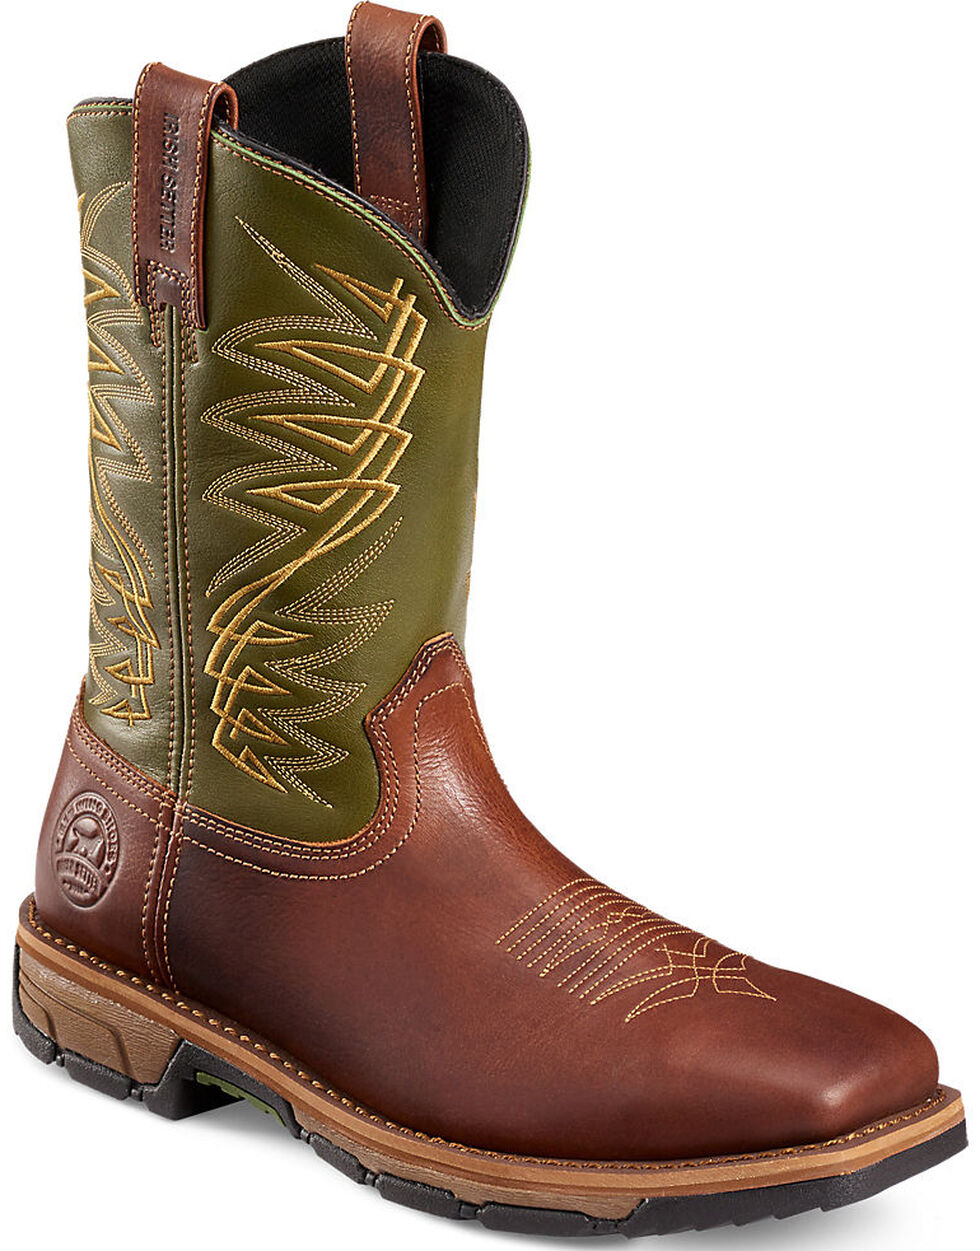 Irish Setter by Red Wing Shoes Men's Green Marshall Work Boots - Steel Toe , Brown, hi-res